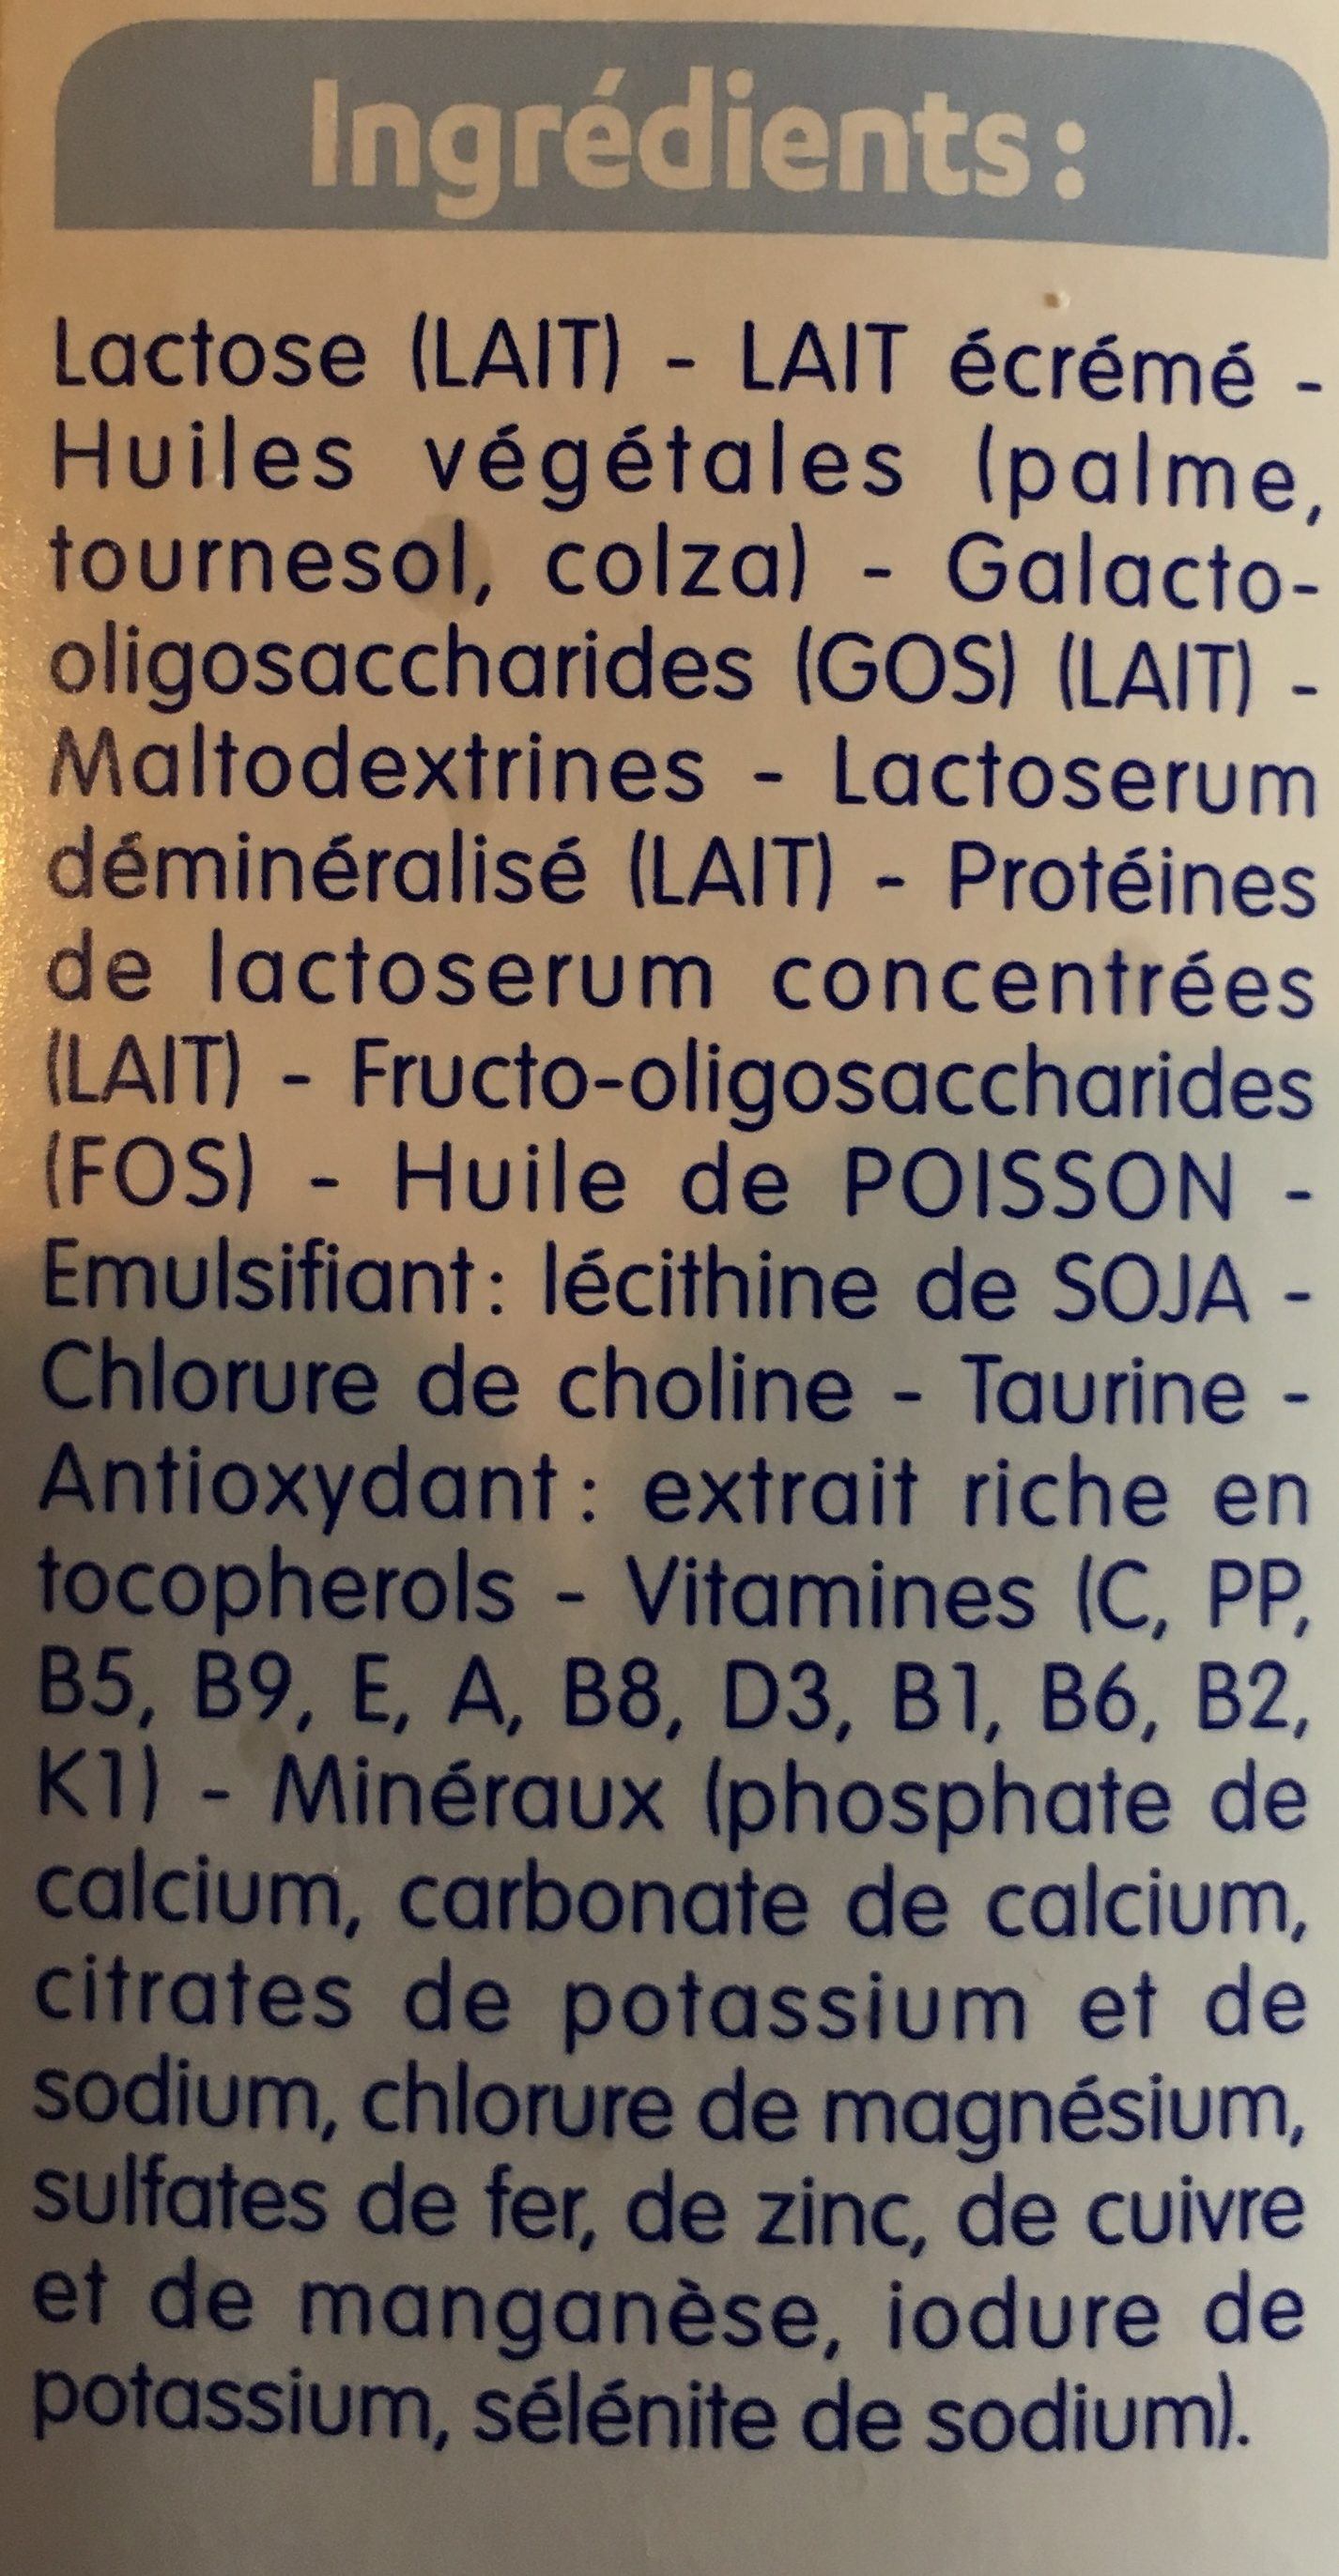 Calisma croissance - Ingredients